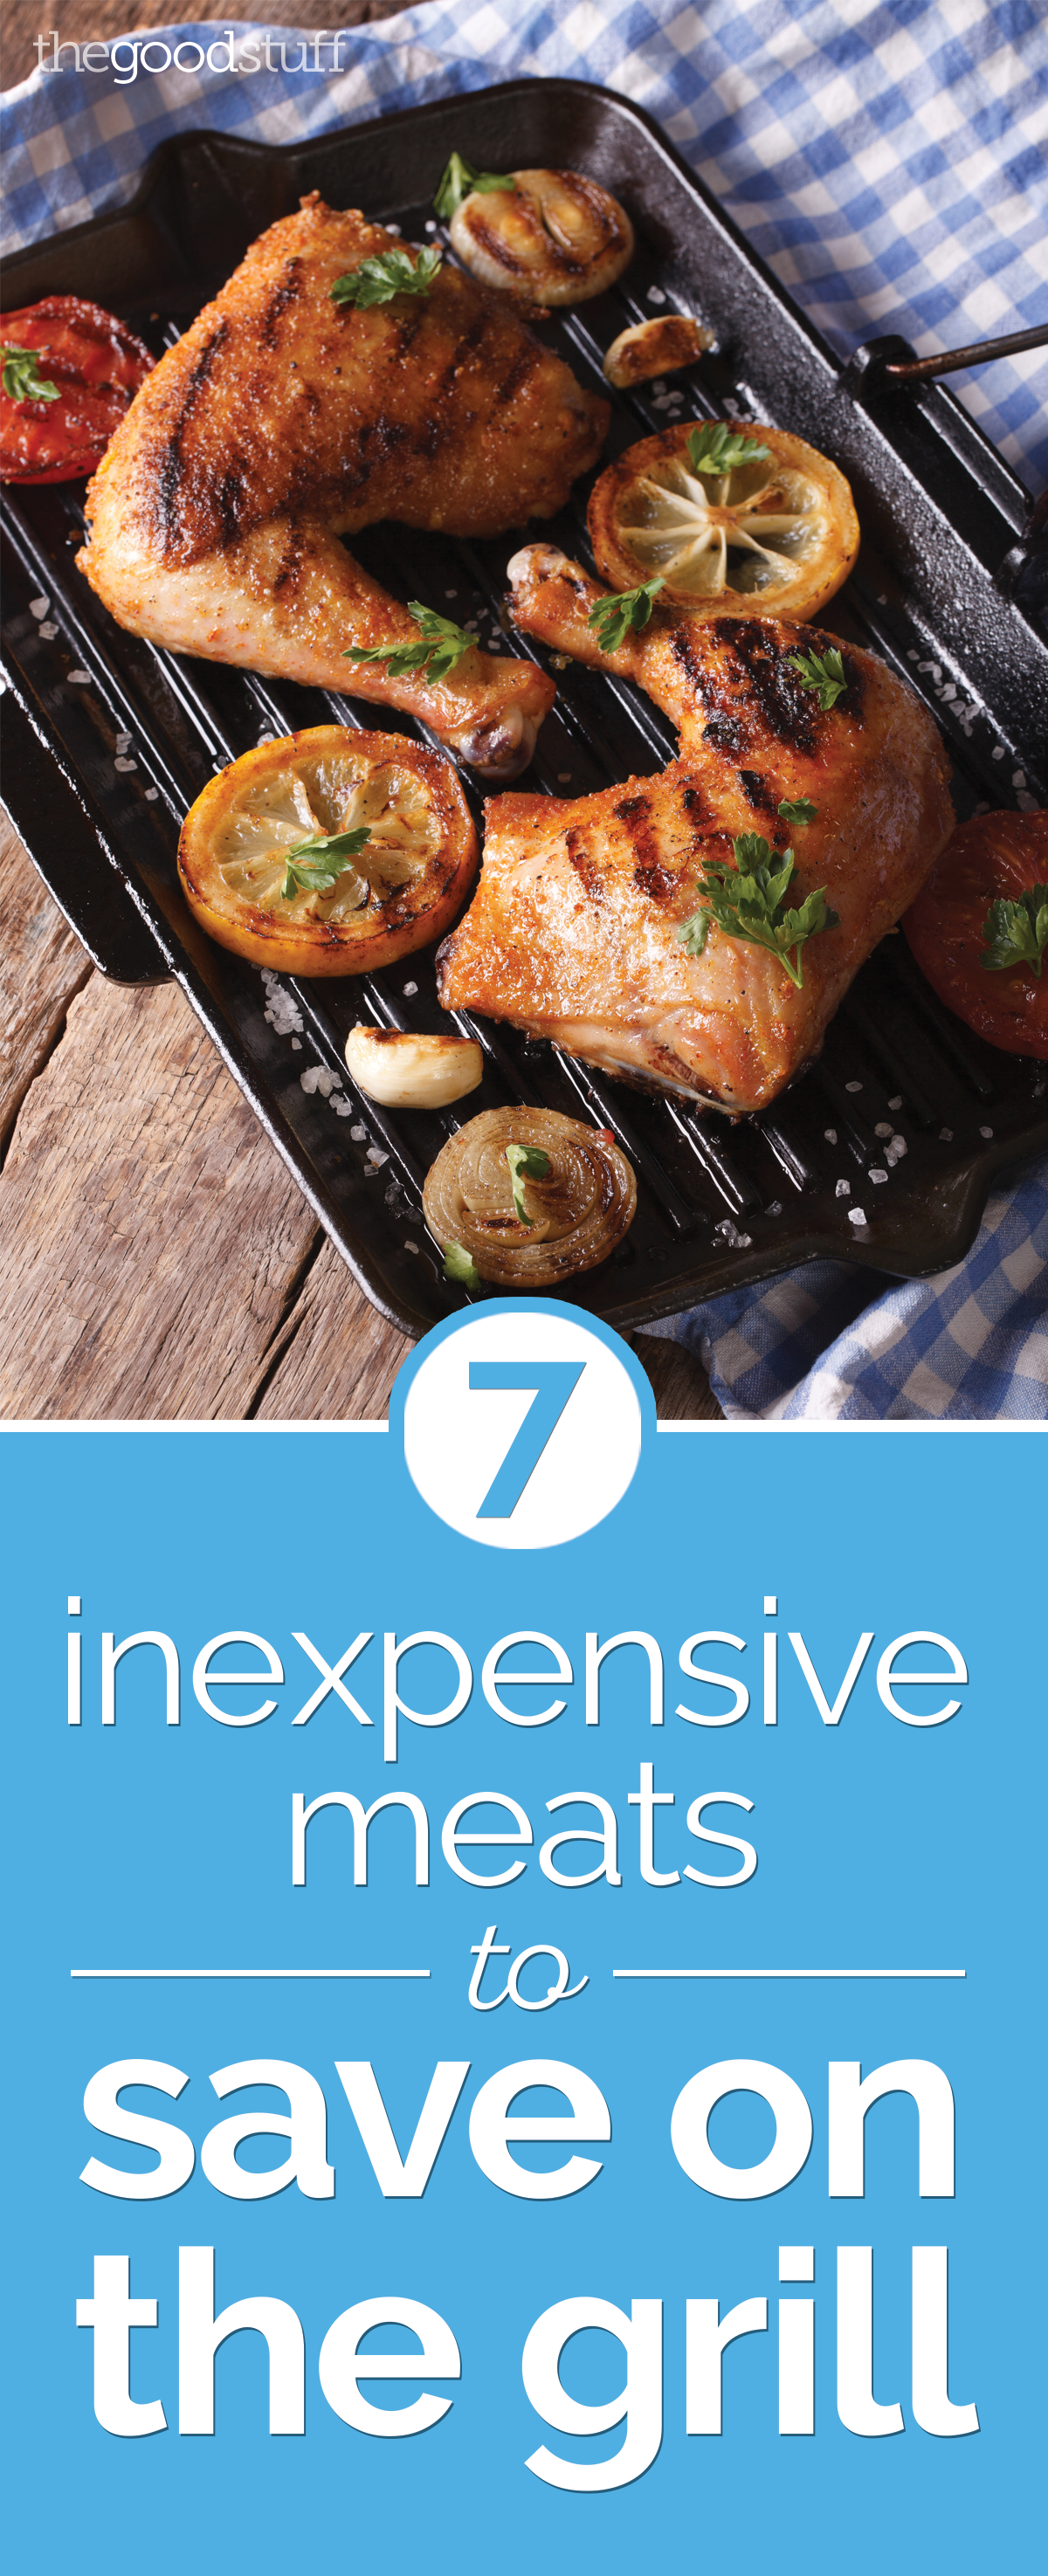 7 Inexpensive Meats to Save on the Grill | thegoodstuff